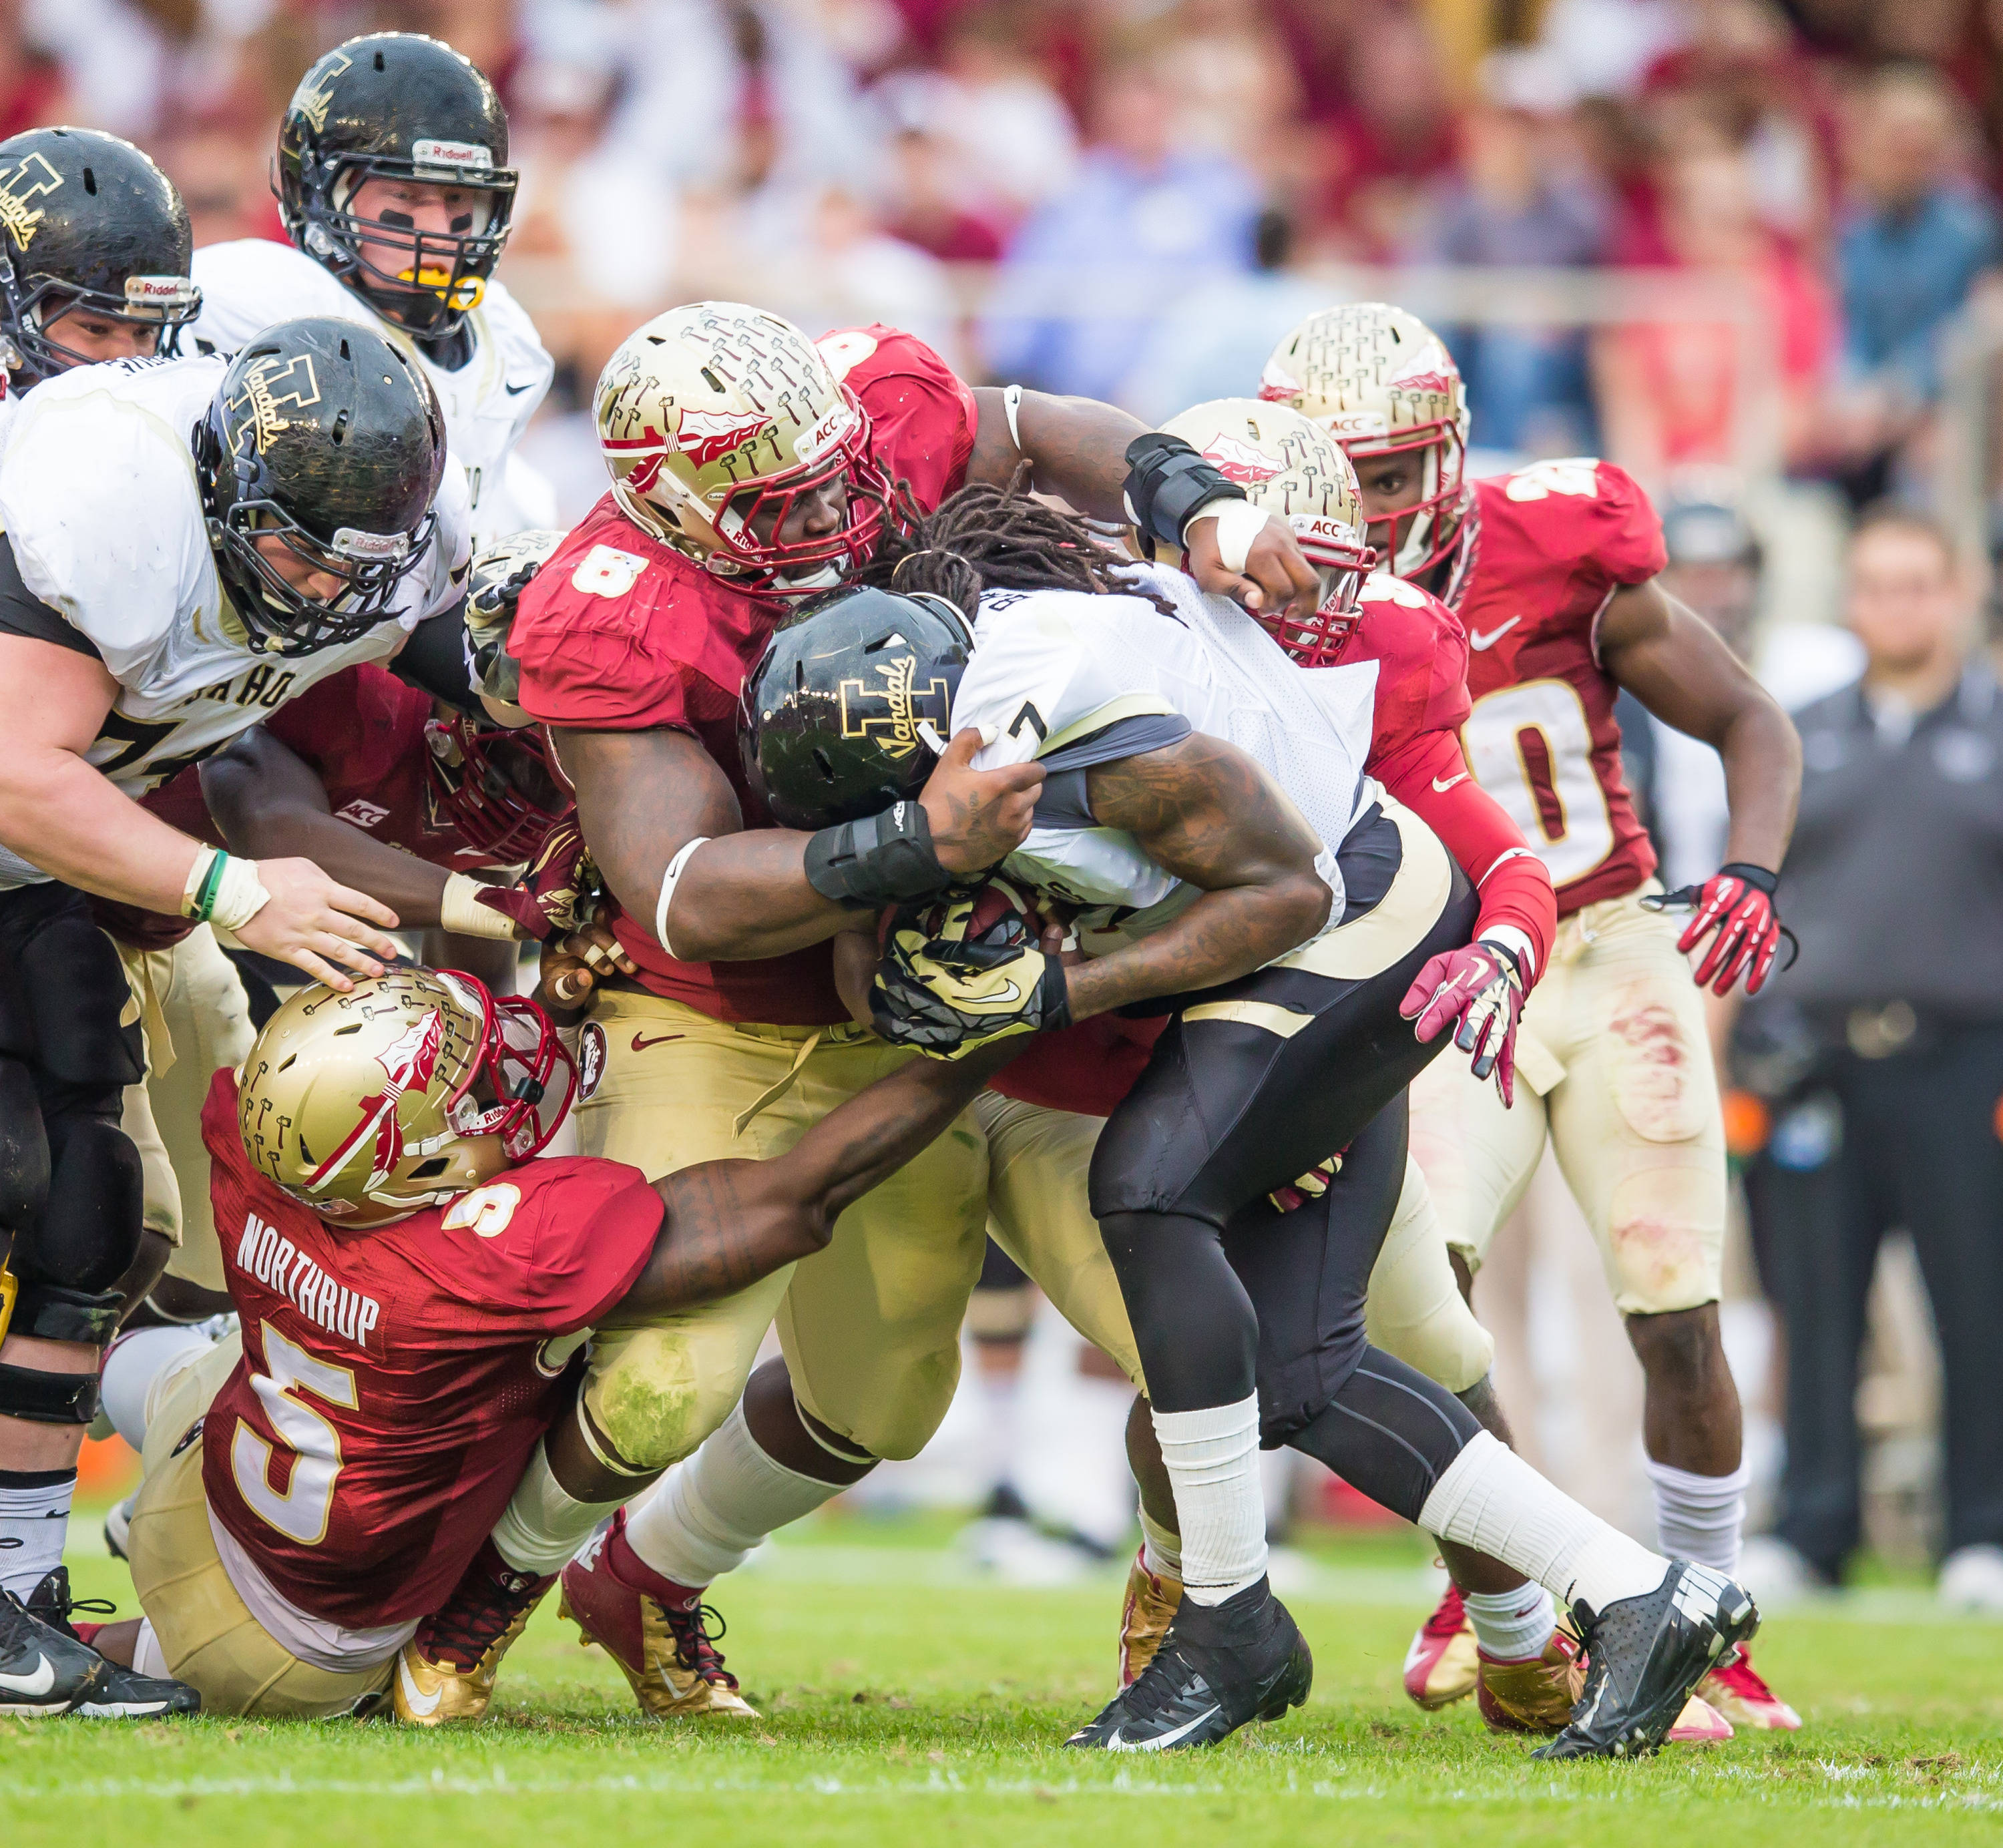 Timmy Jernigan (8) and Reggie Northrup (5) make the defensive stop.